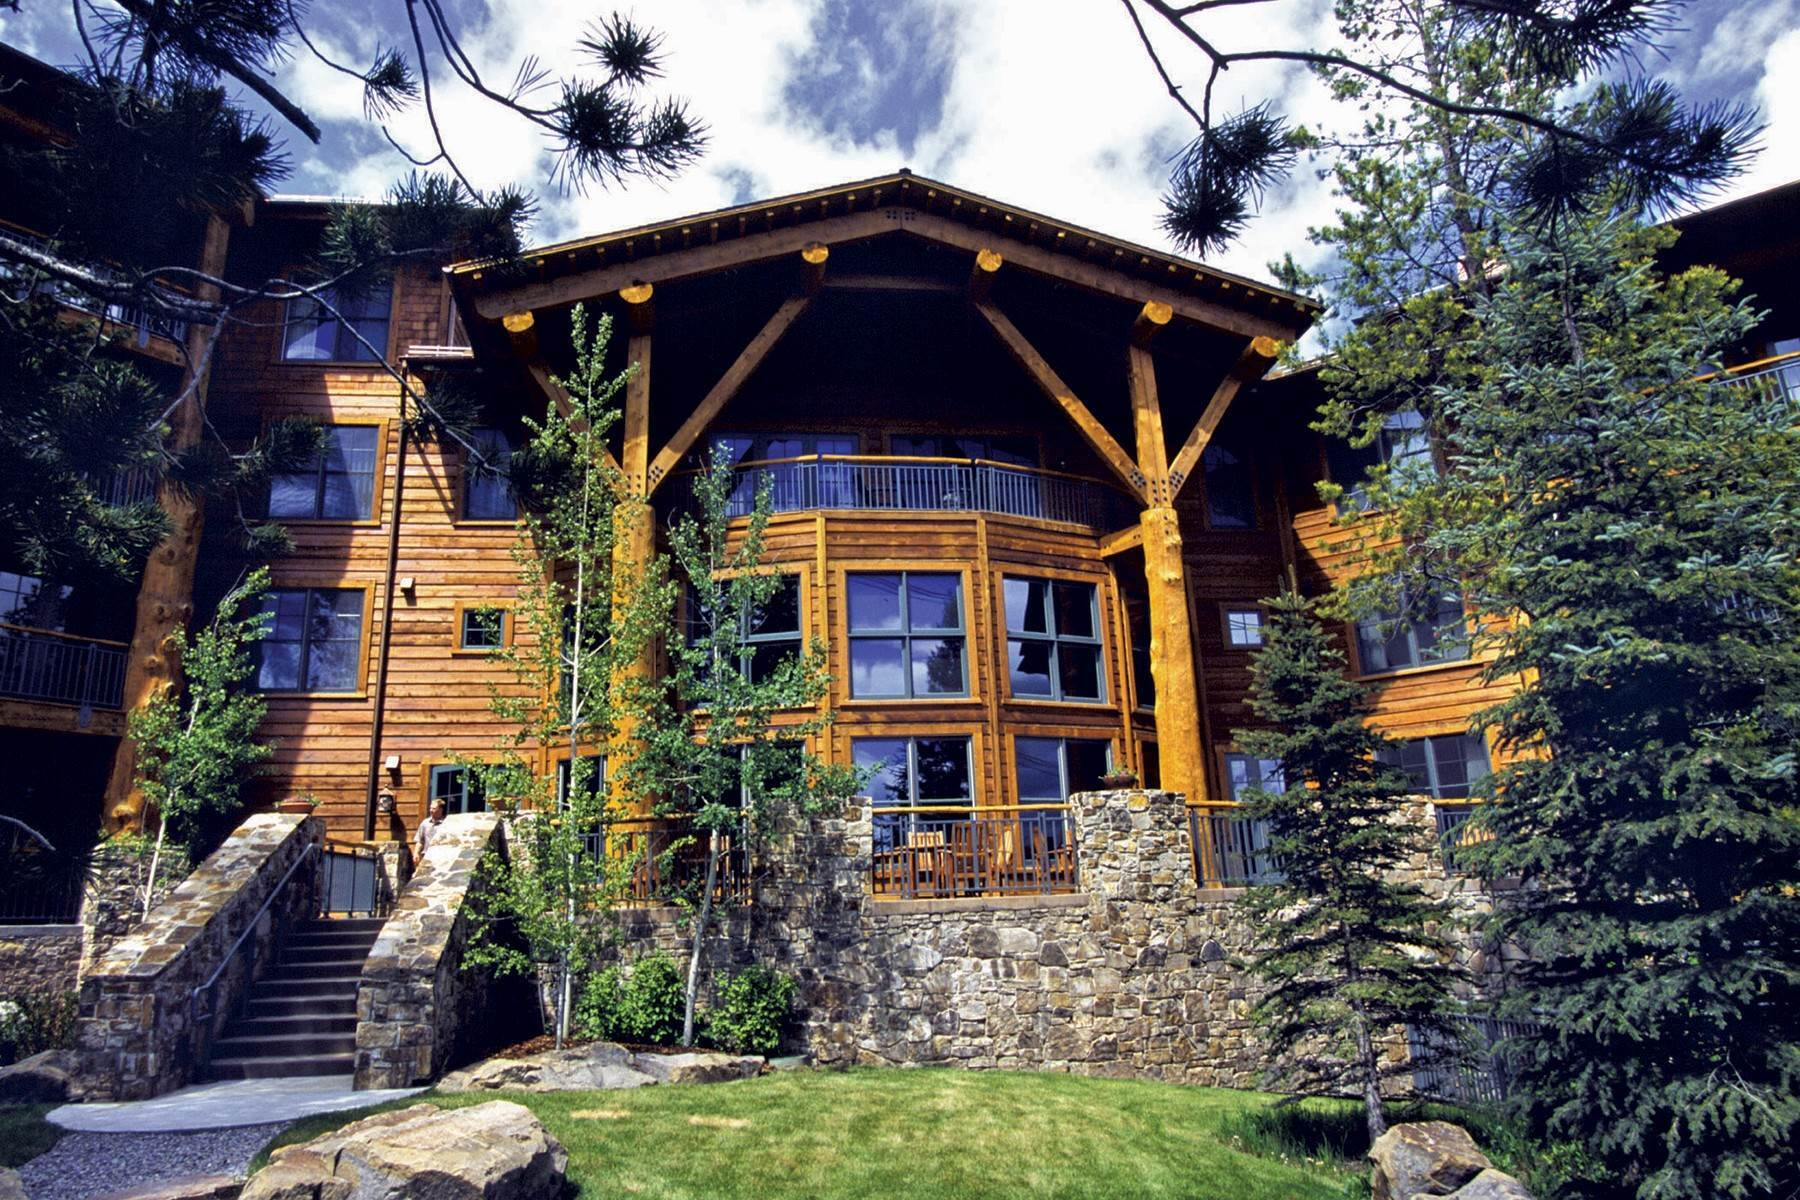 8. fractional ownership prop for Sale at 3340 W Cody Ln, #211 Teton Village, Wyoming 83025 United States